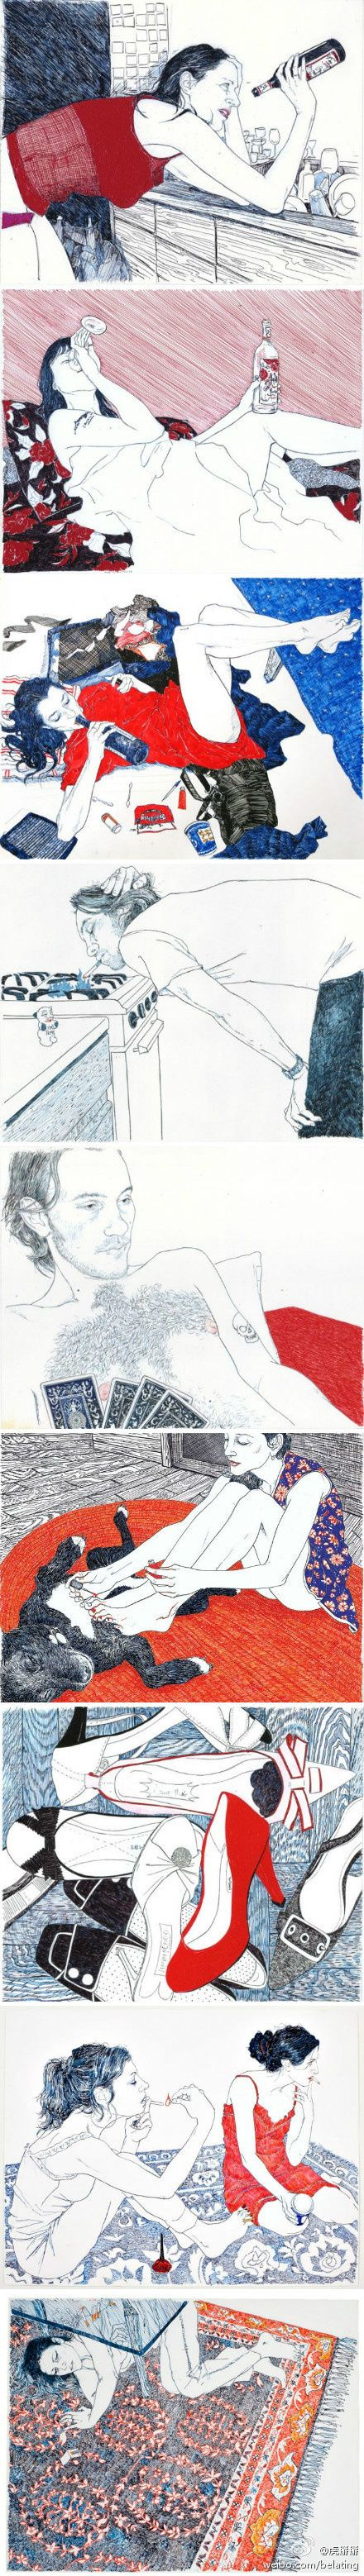 logsee collection to illustrator hope gangloff ballpoint pen